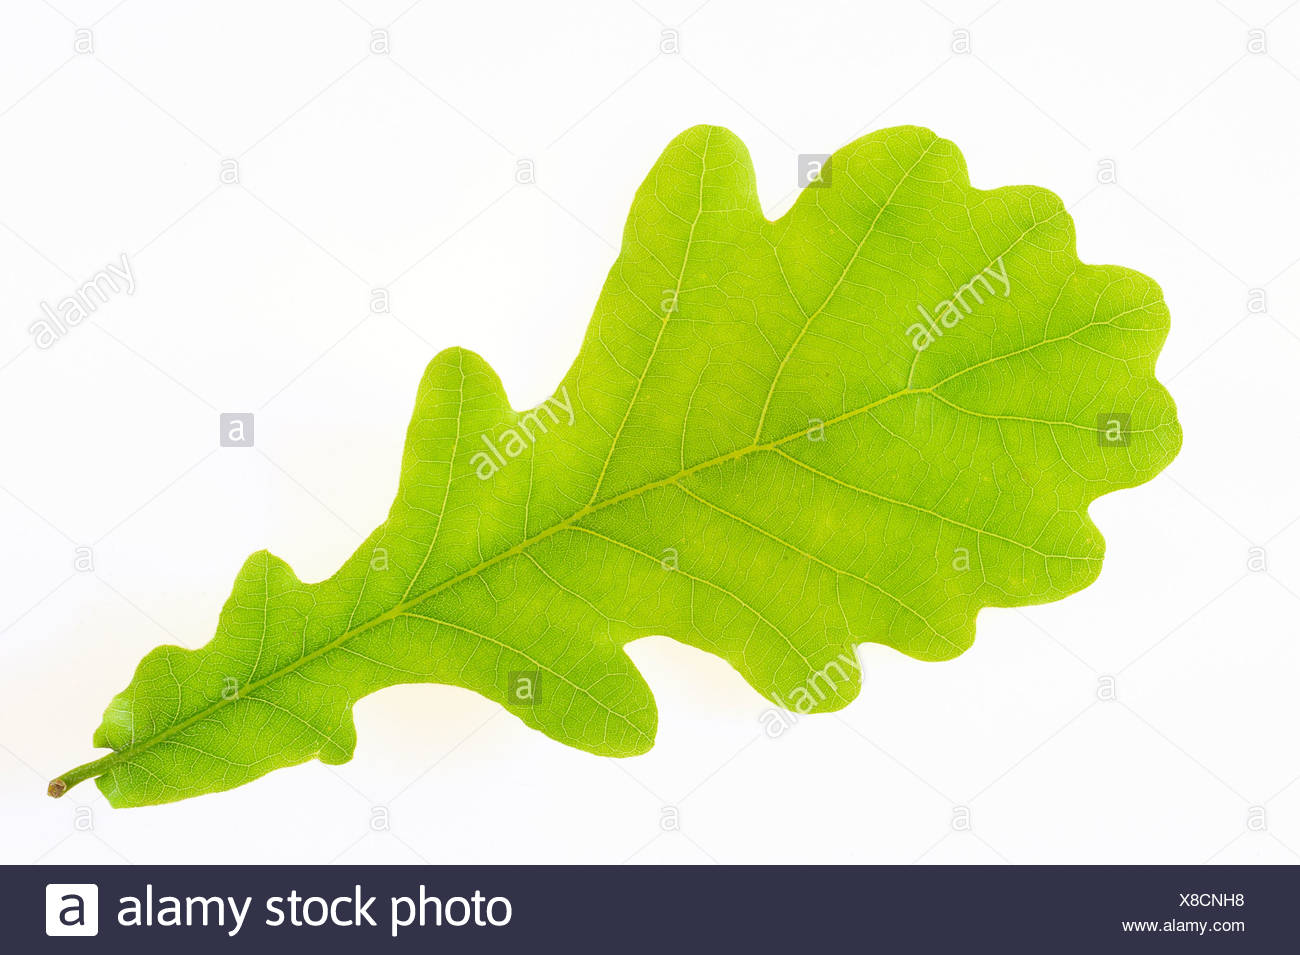 Close-up of an oak leaf over white background Stock Photo